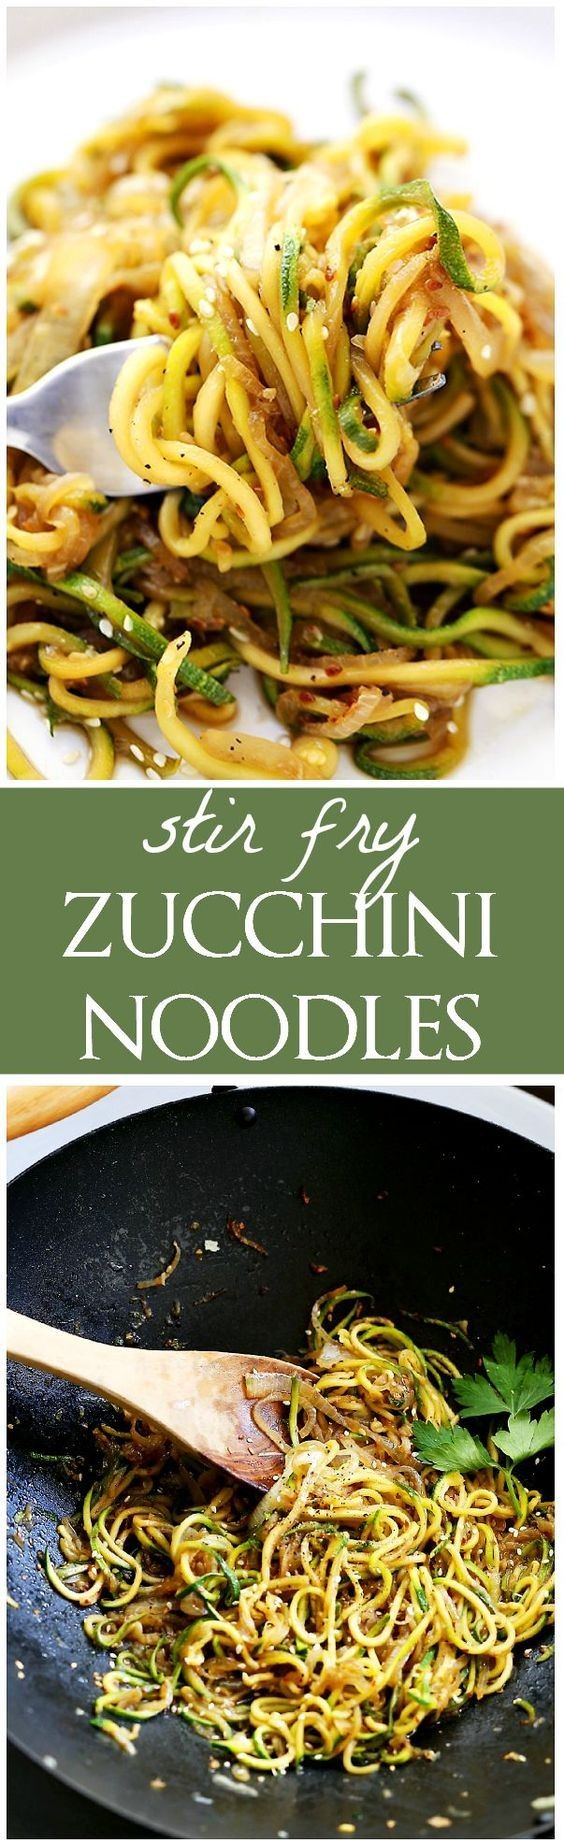 stir Fry Zucchini Noodles  5+Low-Carb+Recipes+With+Over+90K+Repins+on+Pinterest+via+@ByrdieBeauty